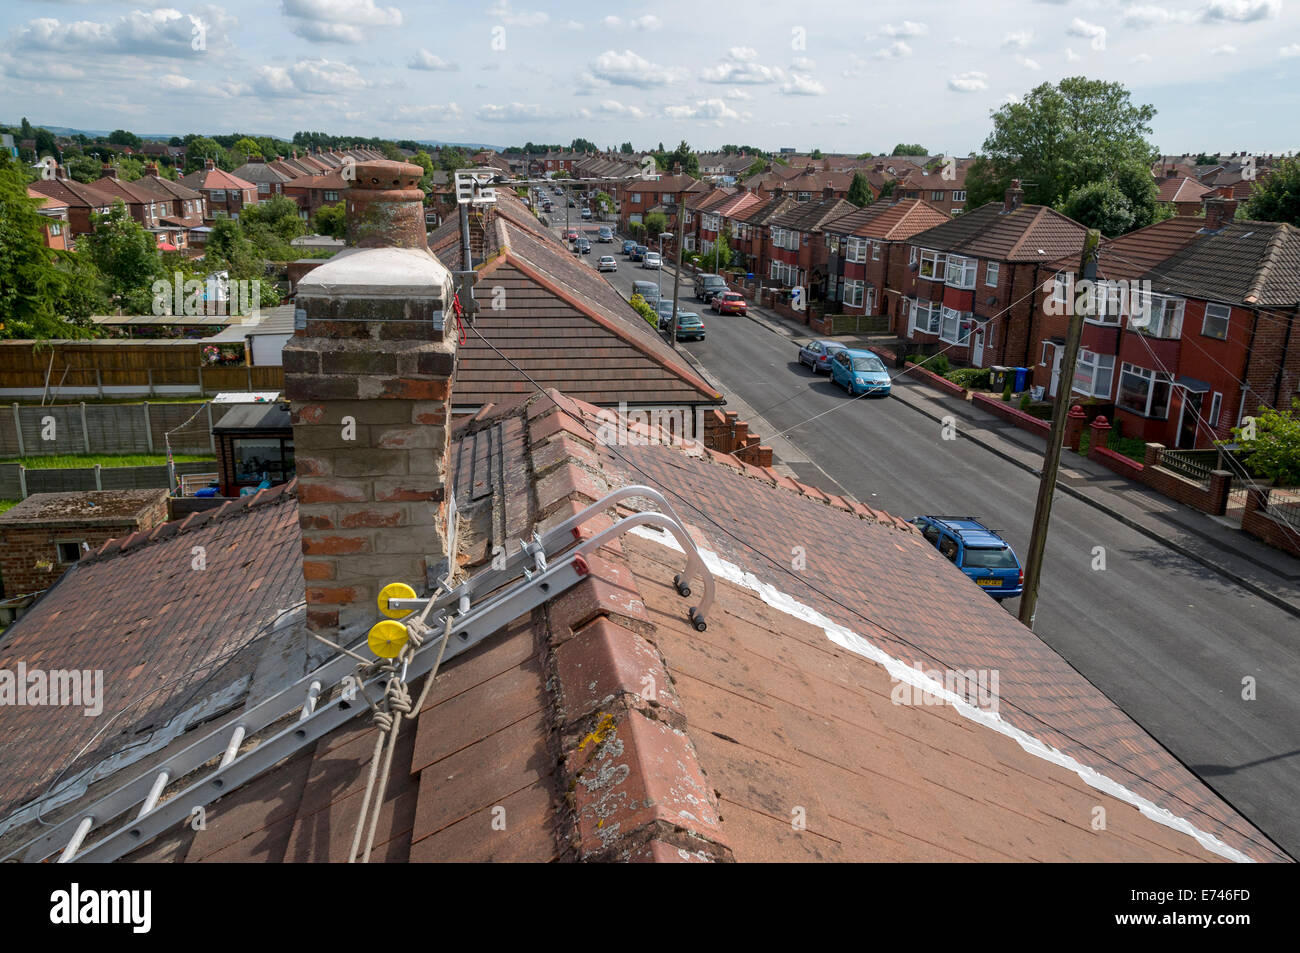 Roof Top View Of A Chimney Undergoing Repairs With A Roof